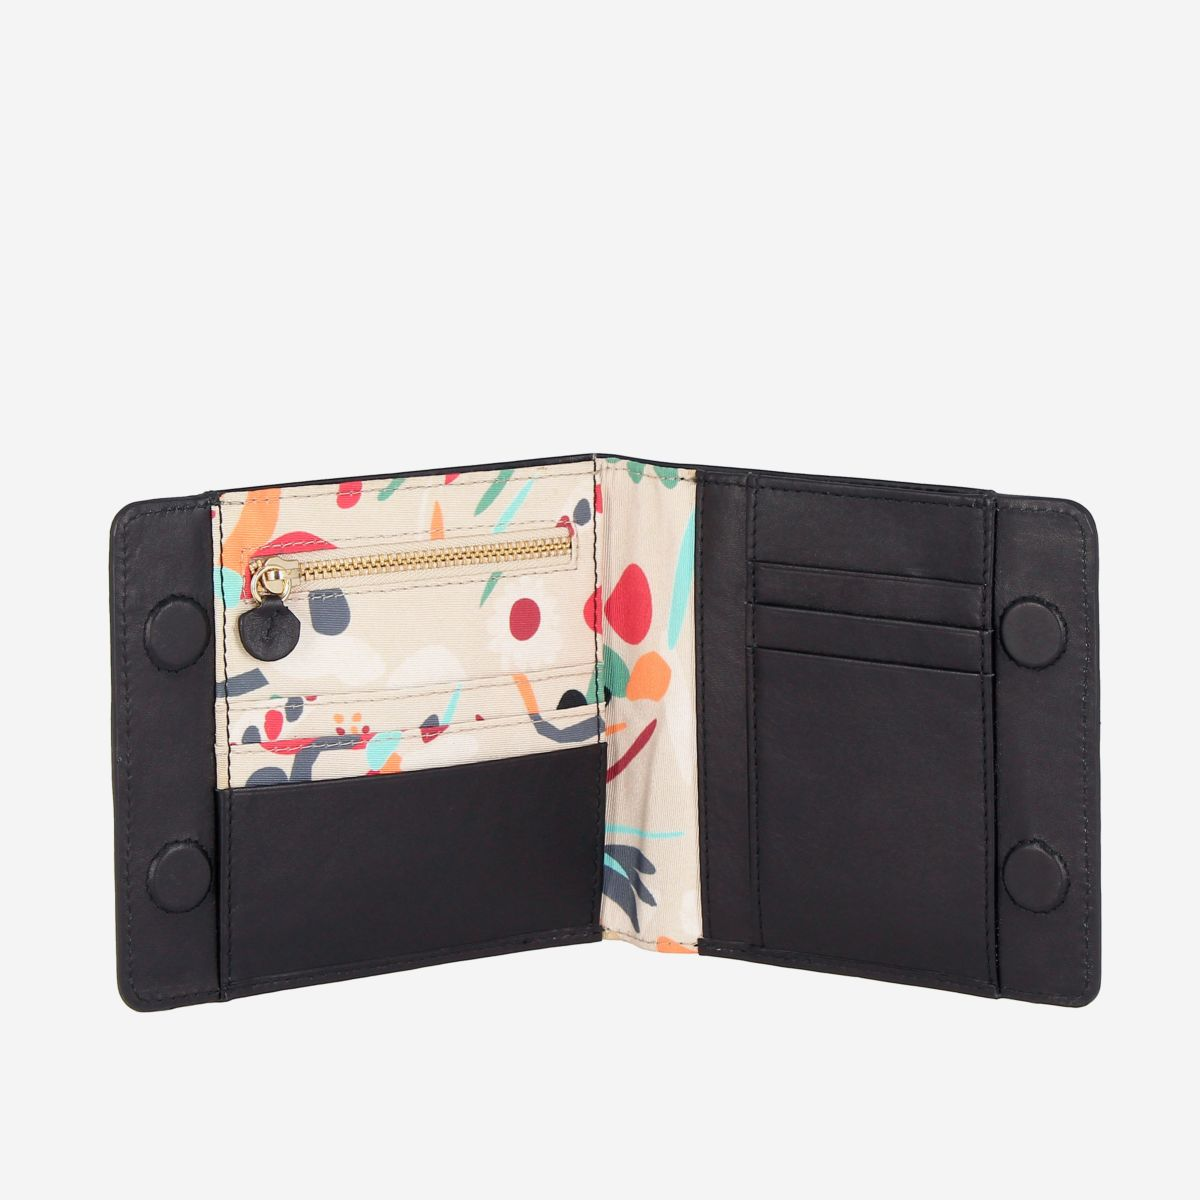 DuDu Designer Womens Leather Wallet With Magnetic Closure - Black